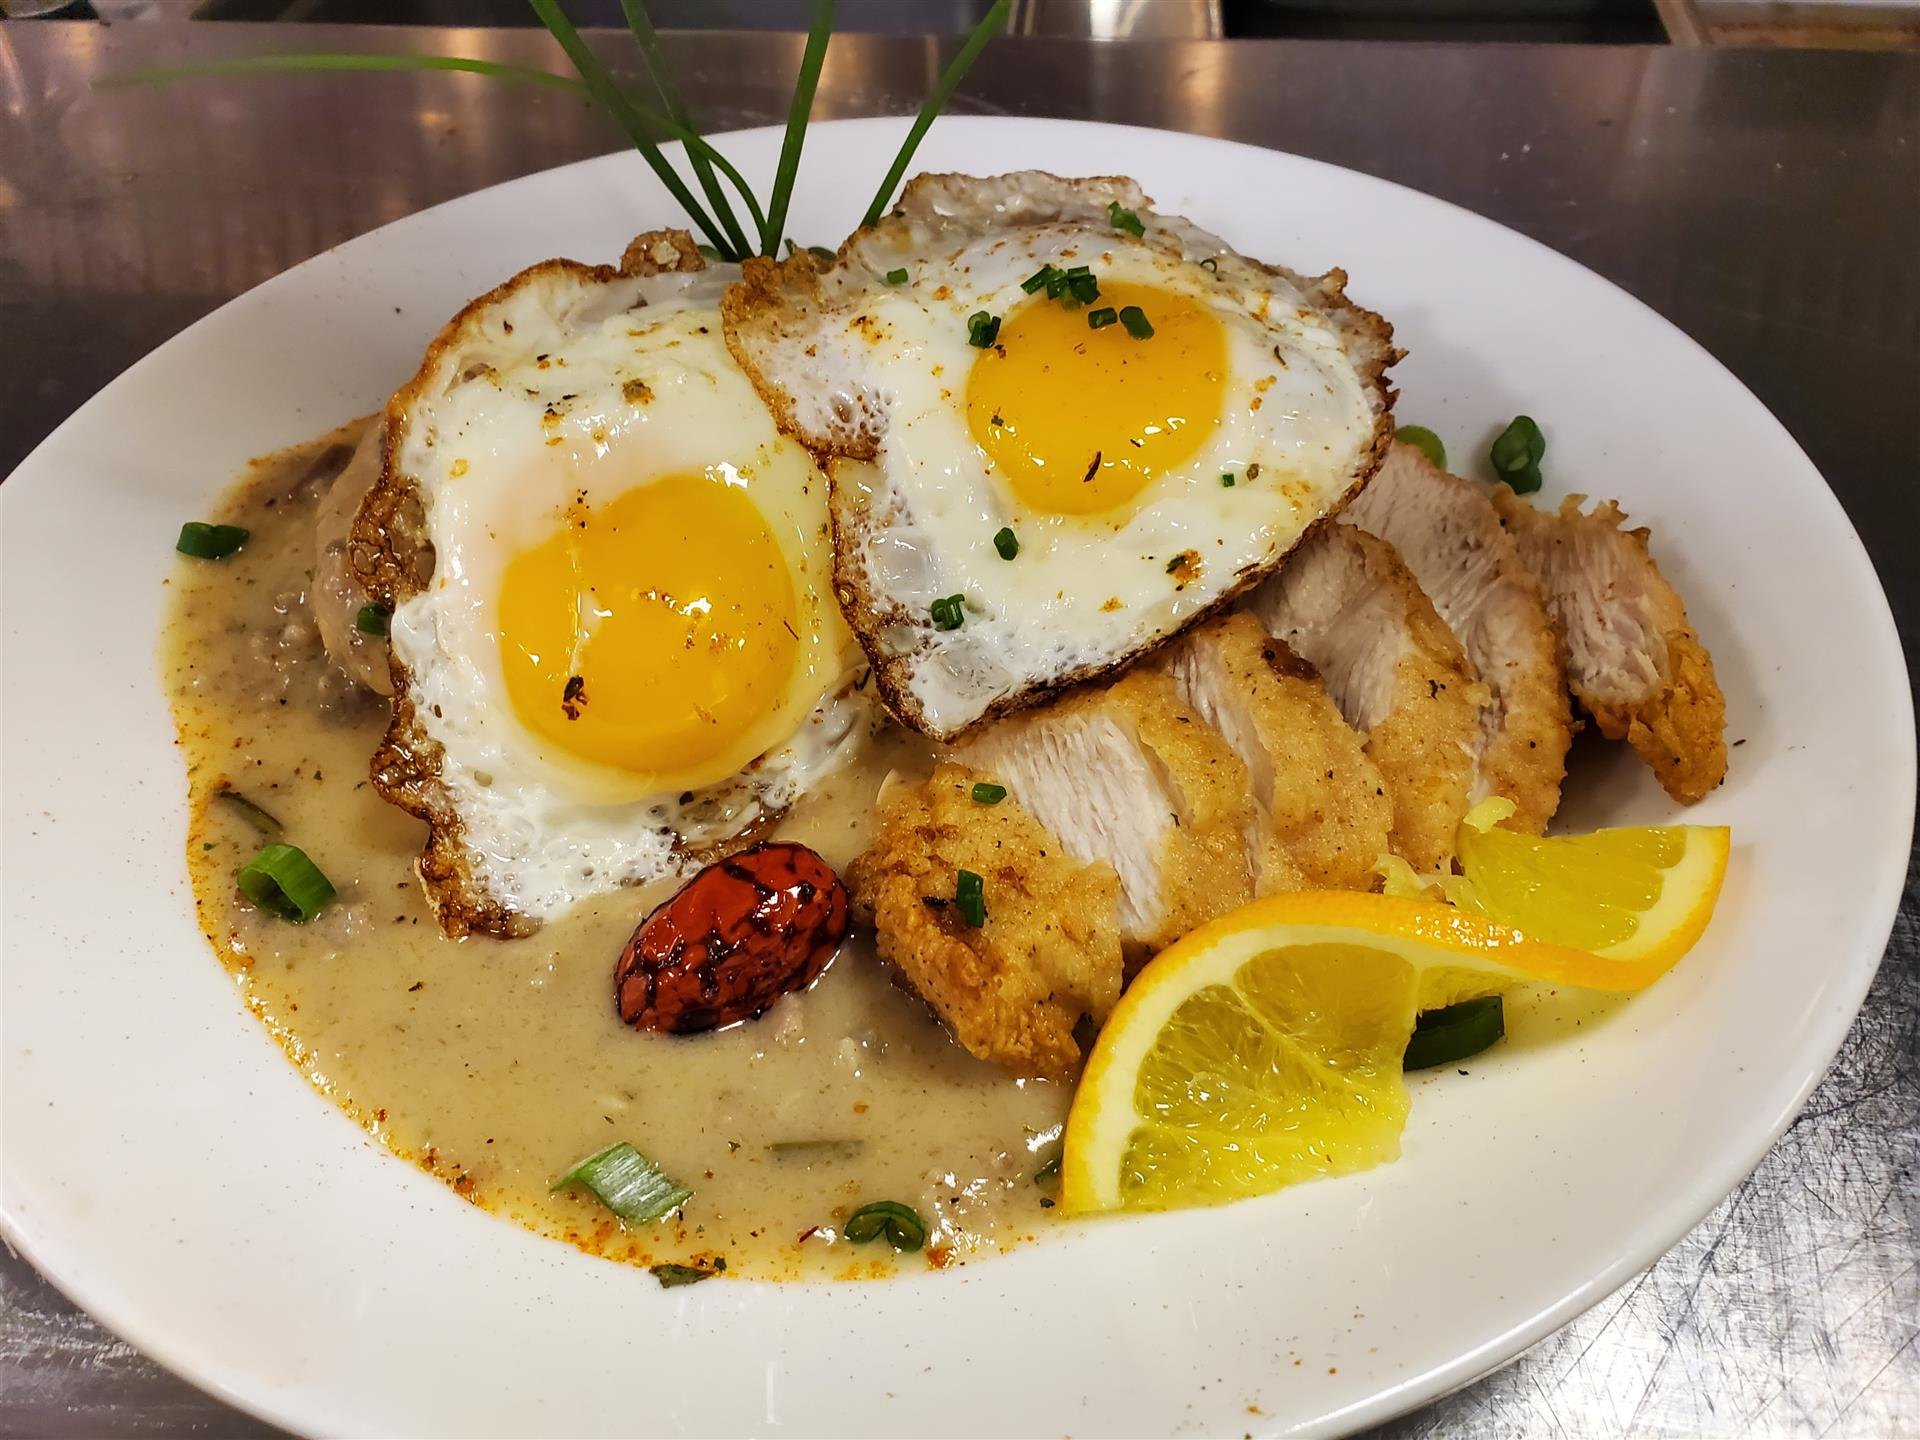 sunny side up eggs with breaded chicken